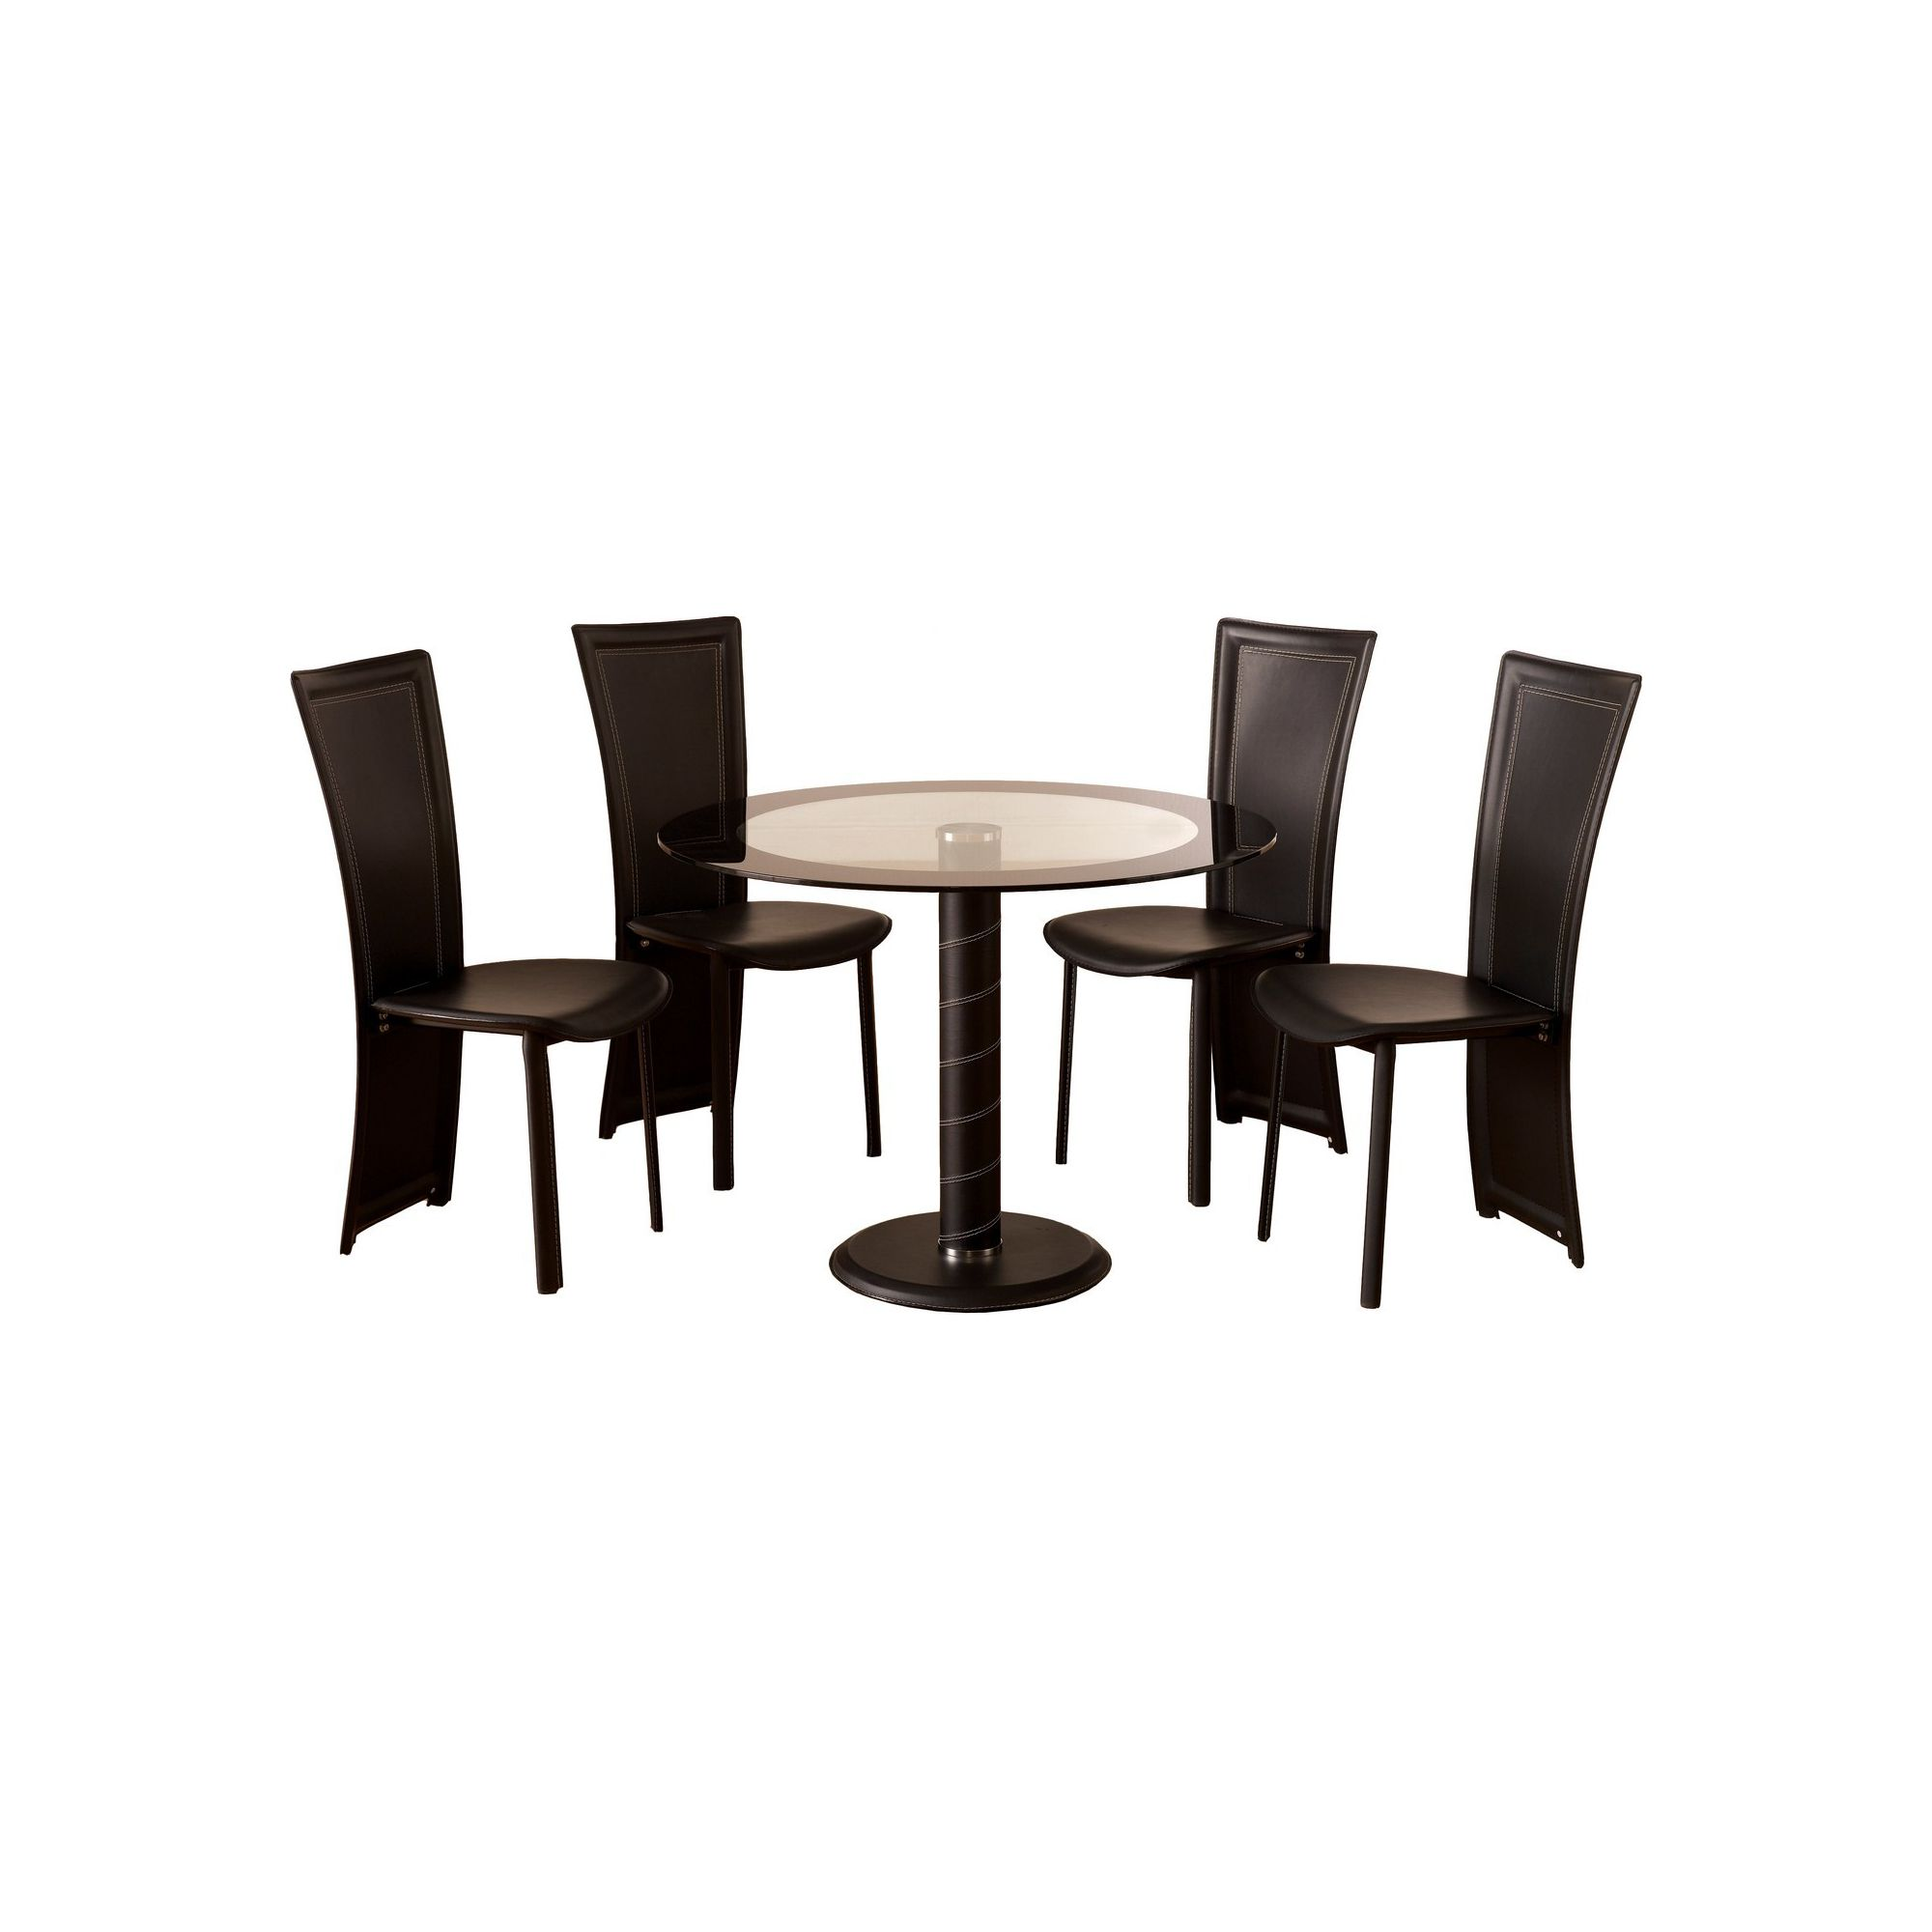 Home Essence Coromandel 5 Piece Round Dining Set at Tesco Direct